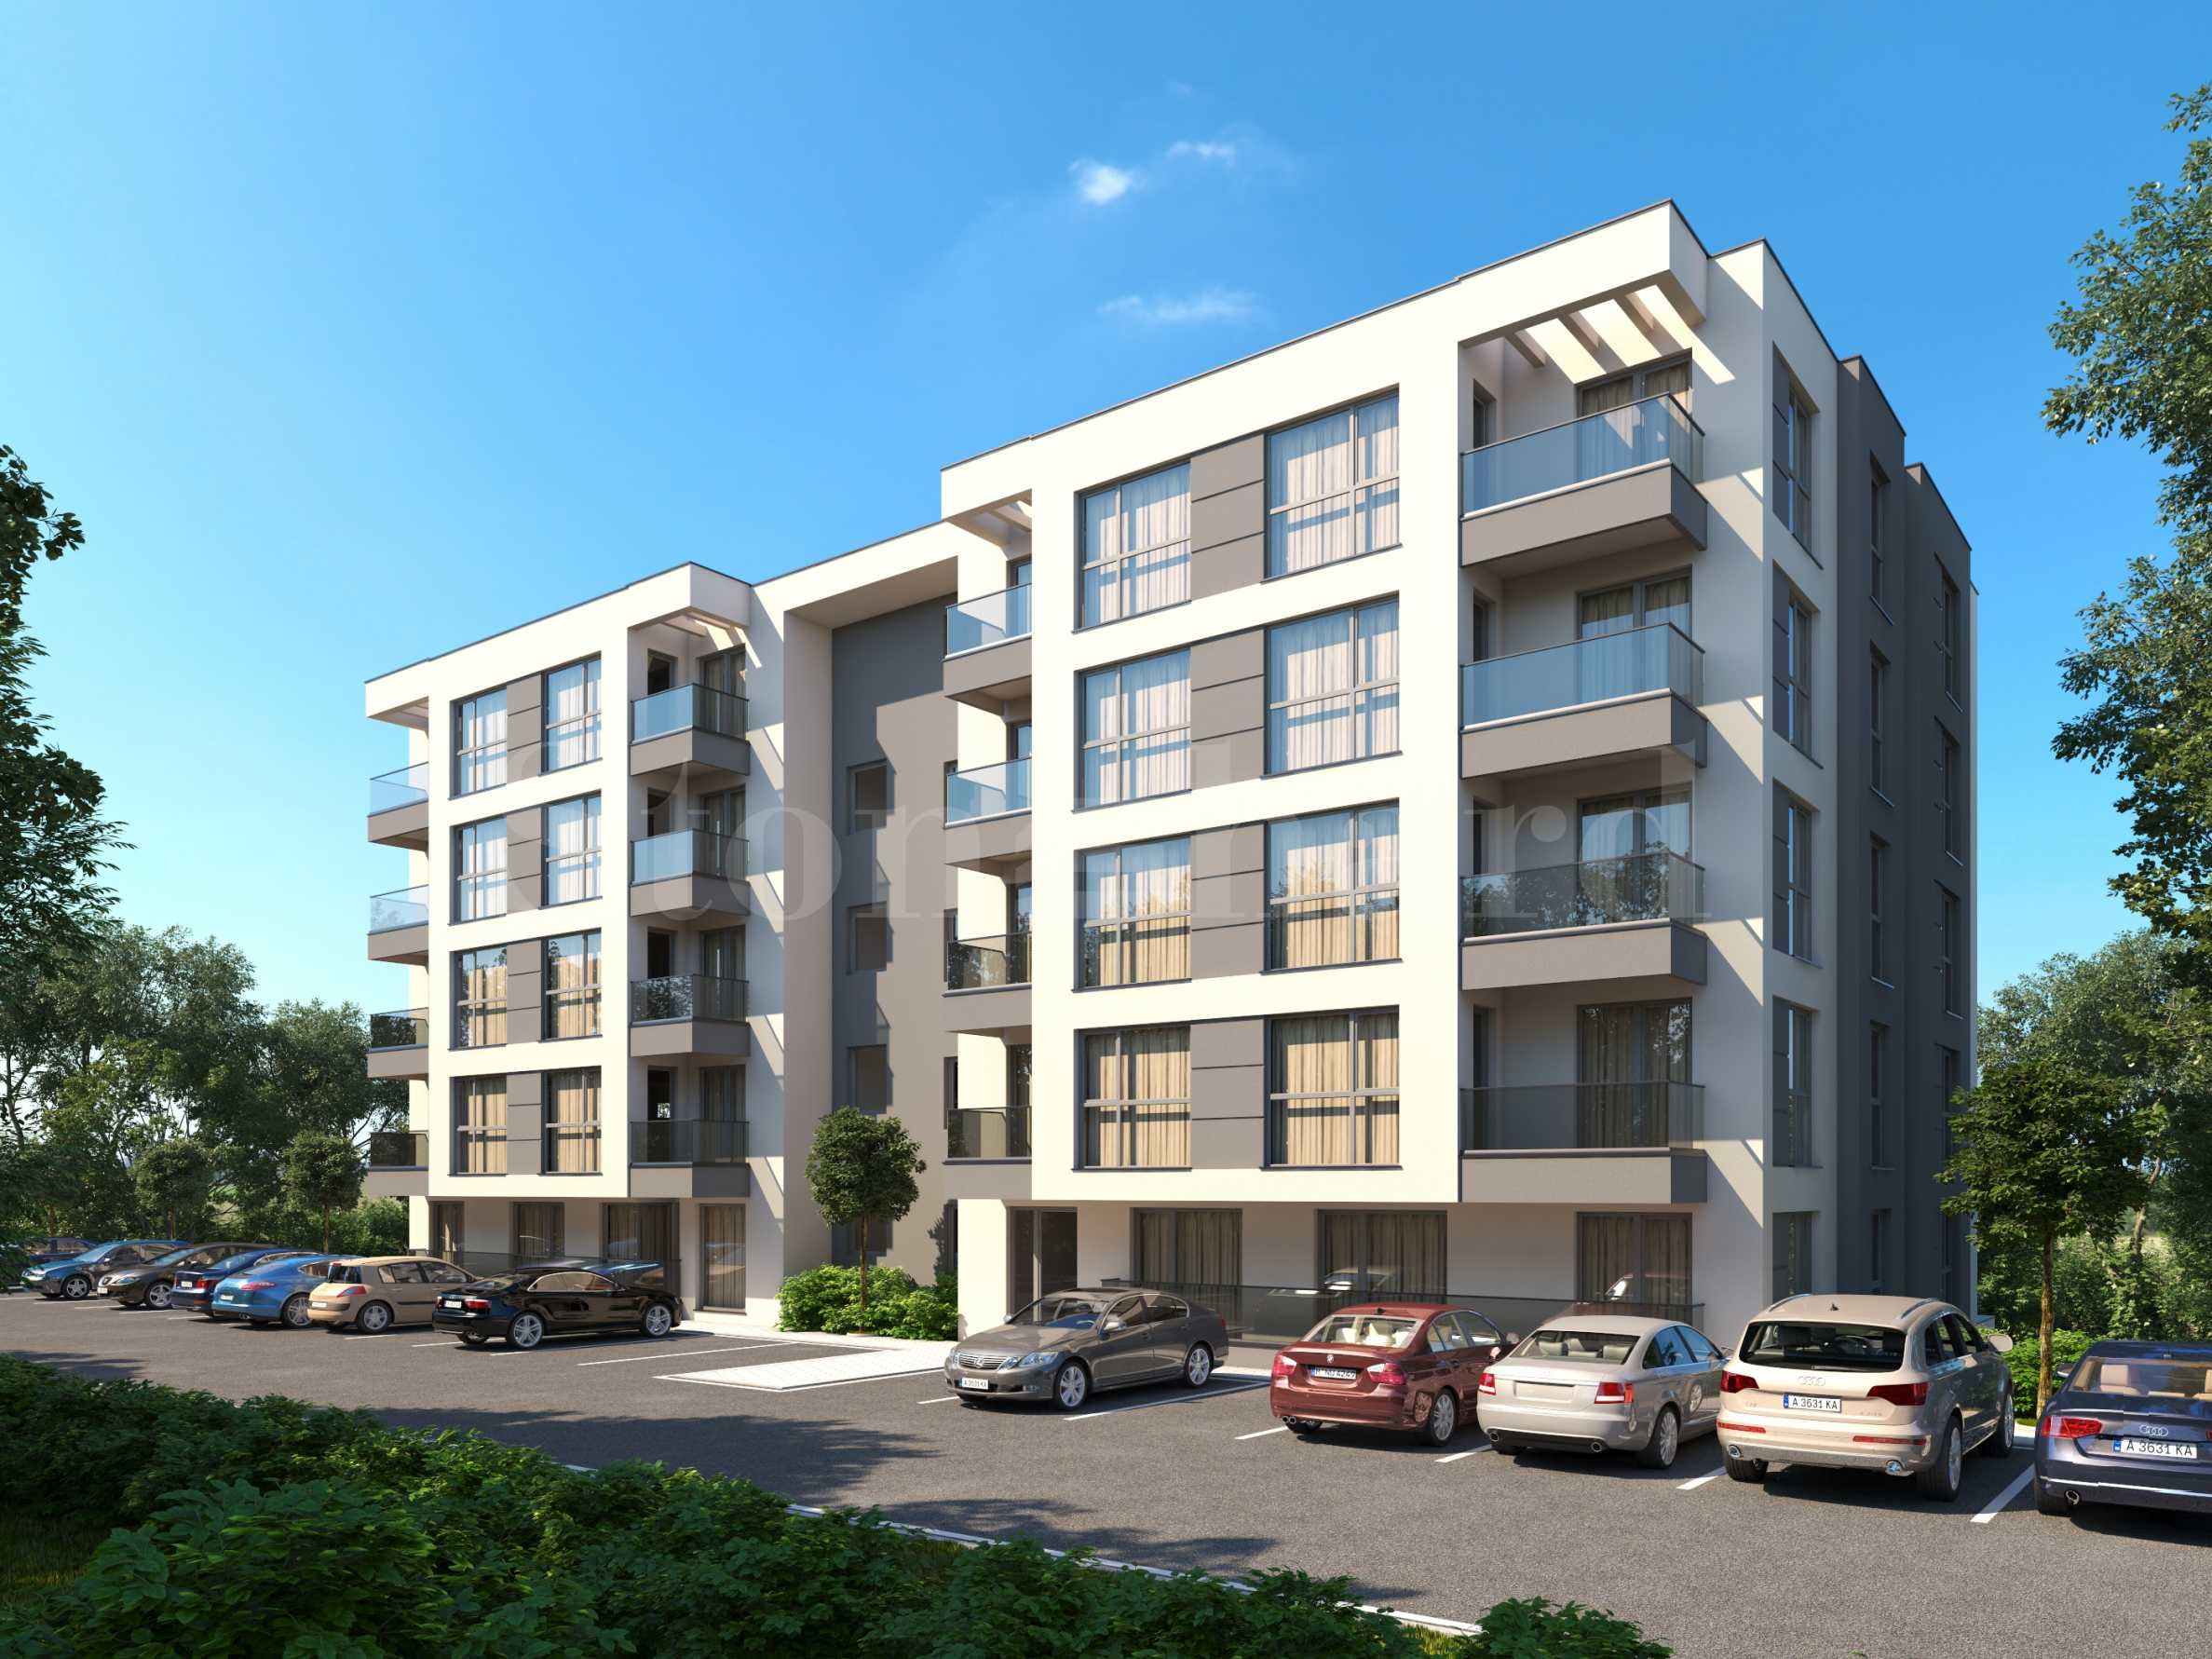 Building - 7. Apartments in a modern complex in Burgas1 - Stonehard